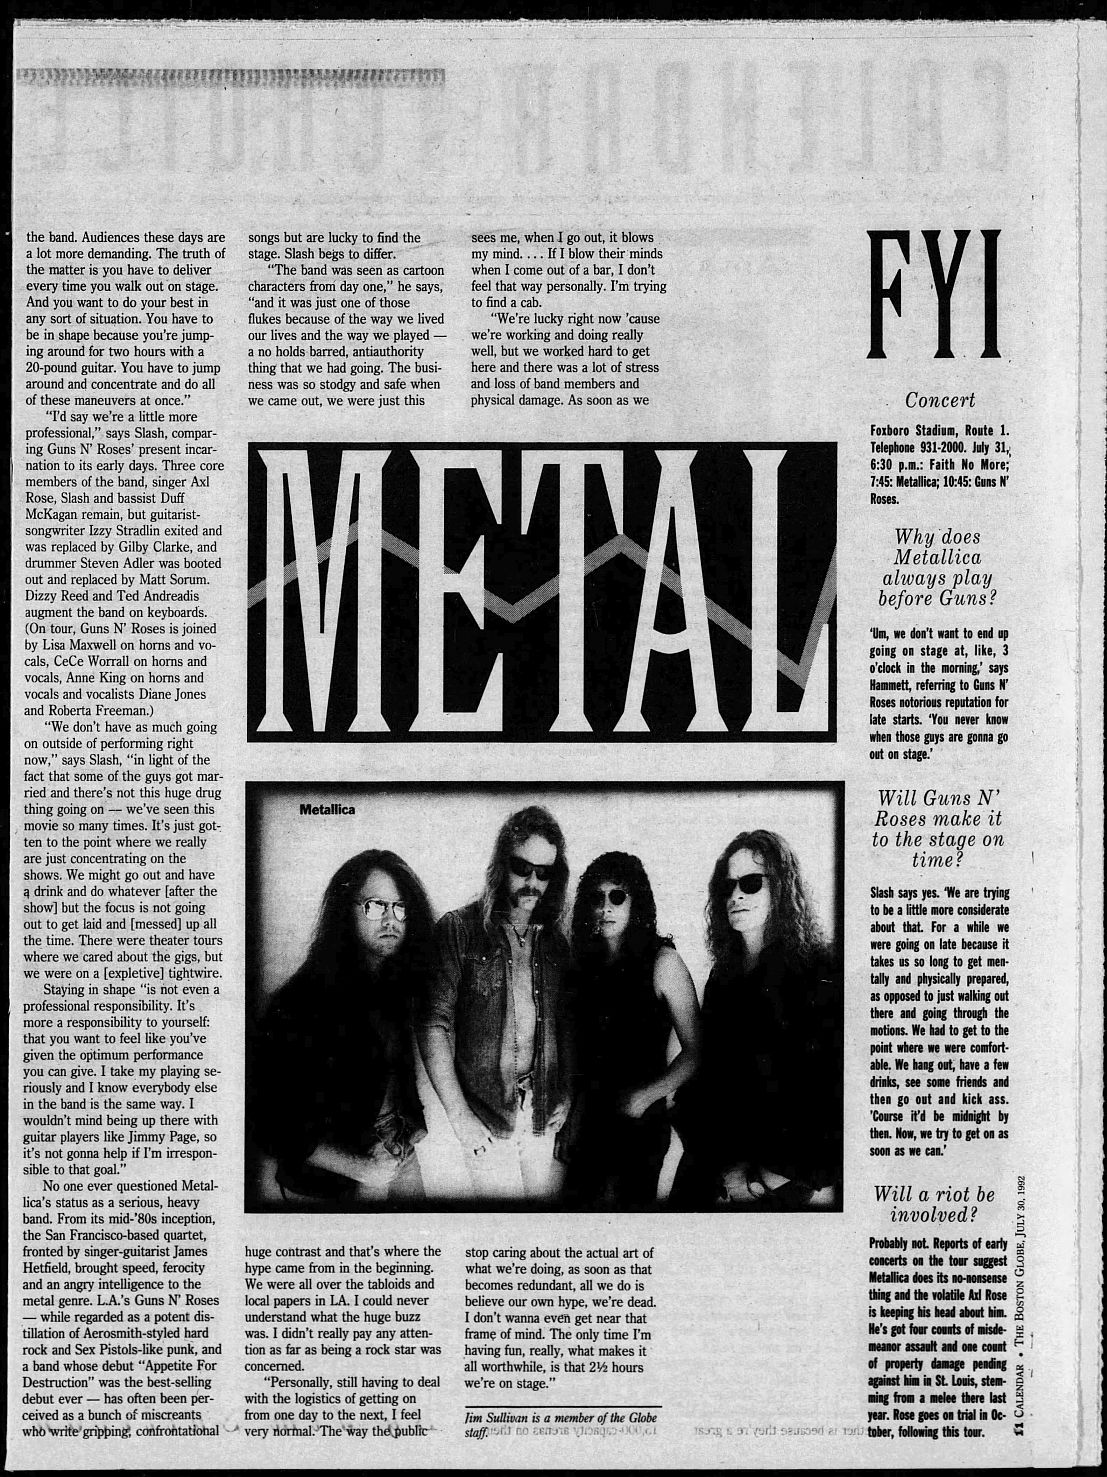 1992.07.30 - The Boston Globe - Testing Their Metal (Slash, Hammett) F6OXqVte_o